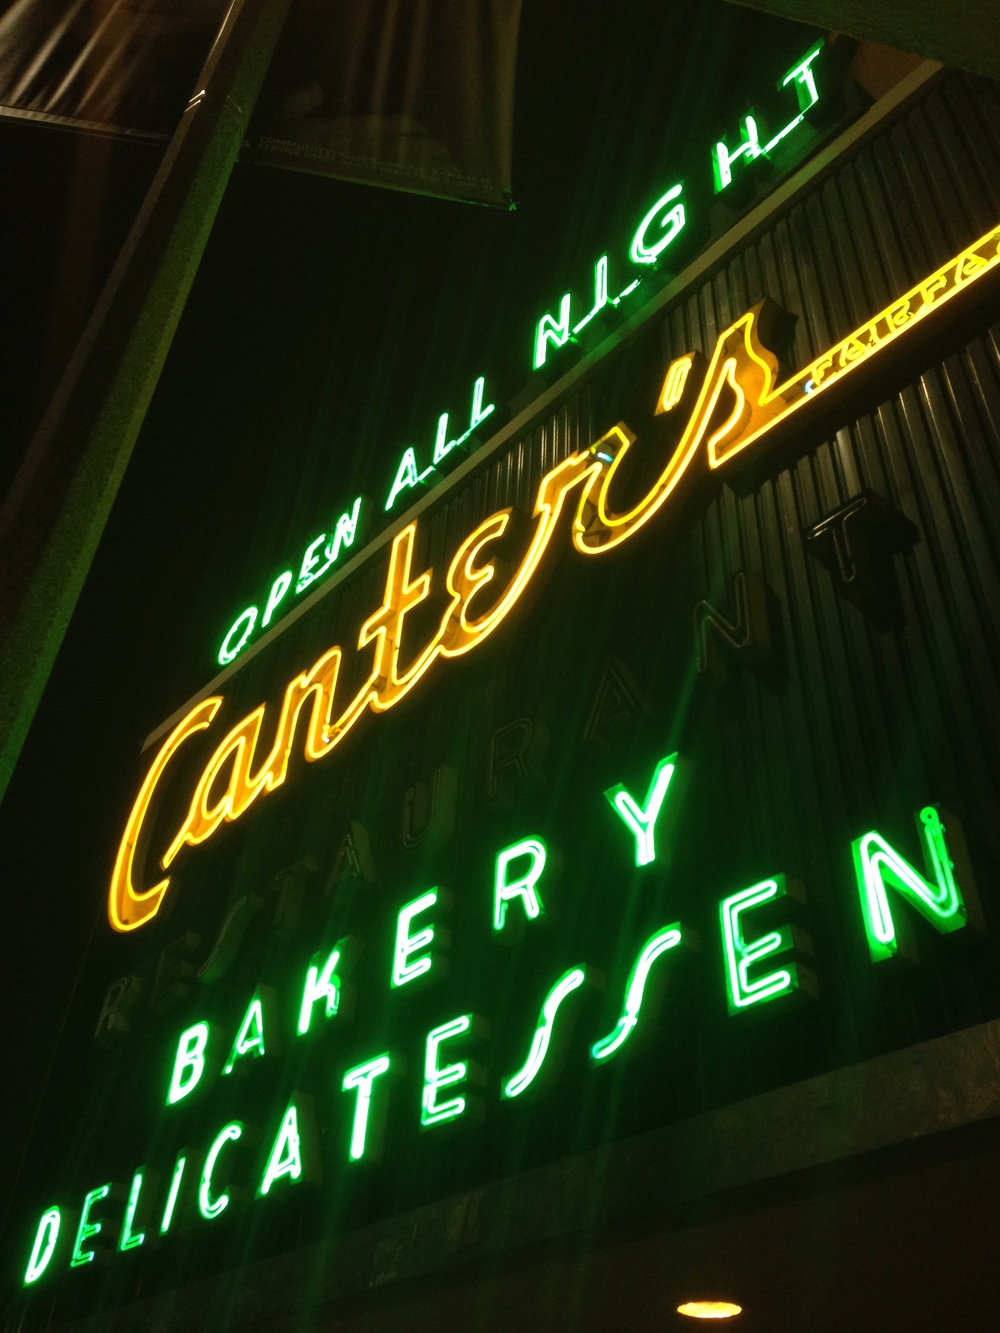 Canter's in Fairfax, Los Angeles, near West Hollywood.